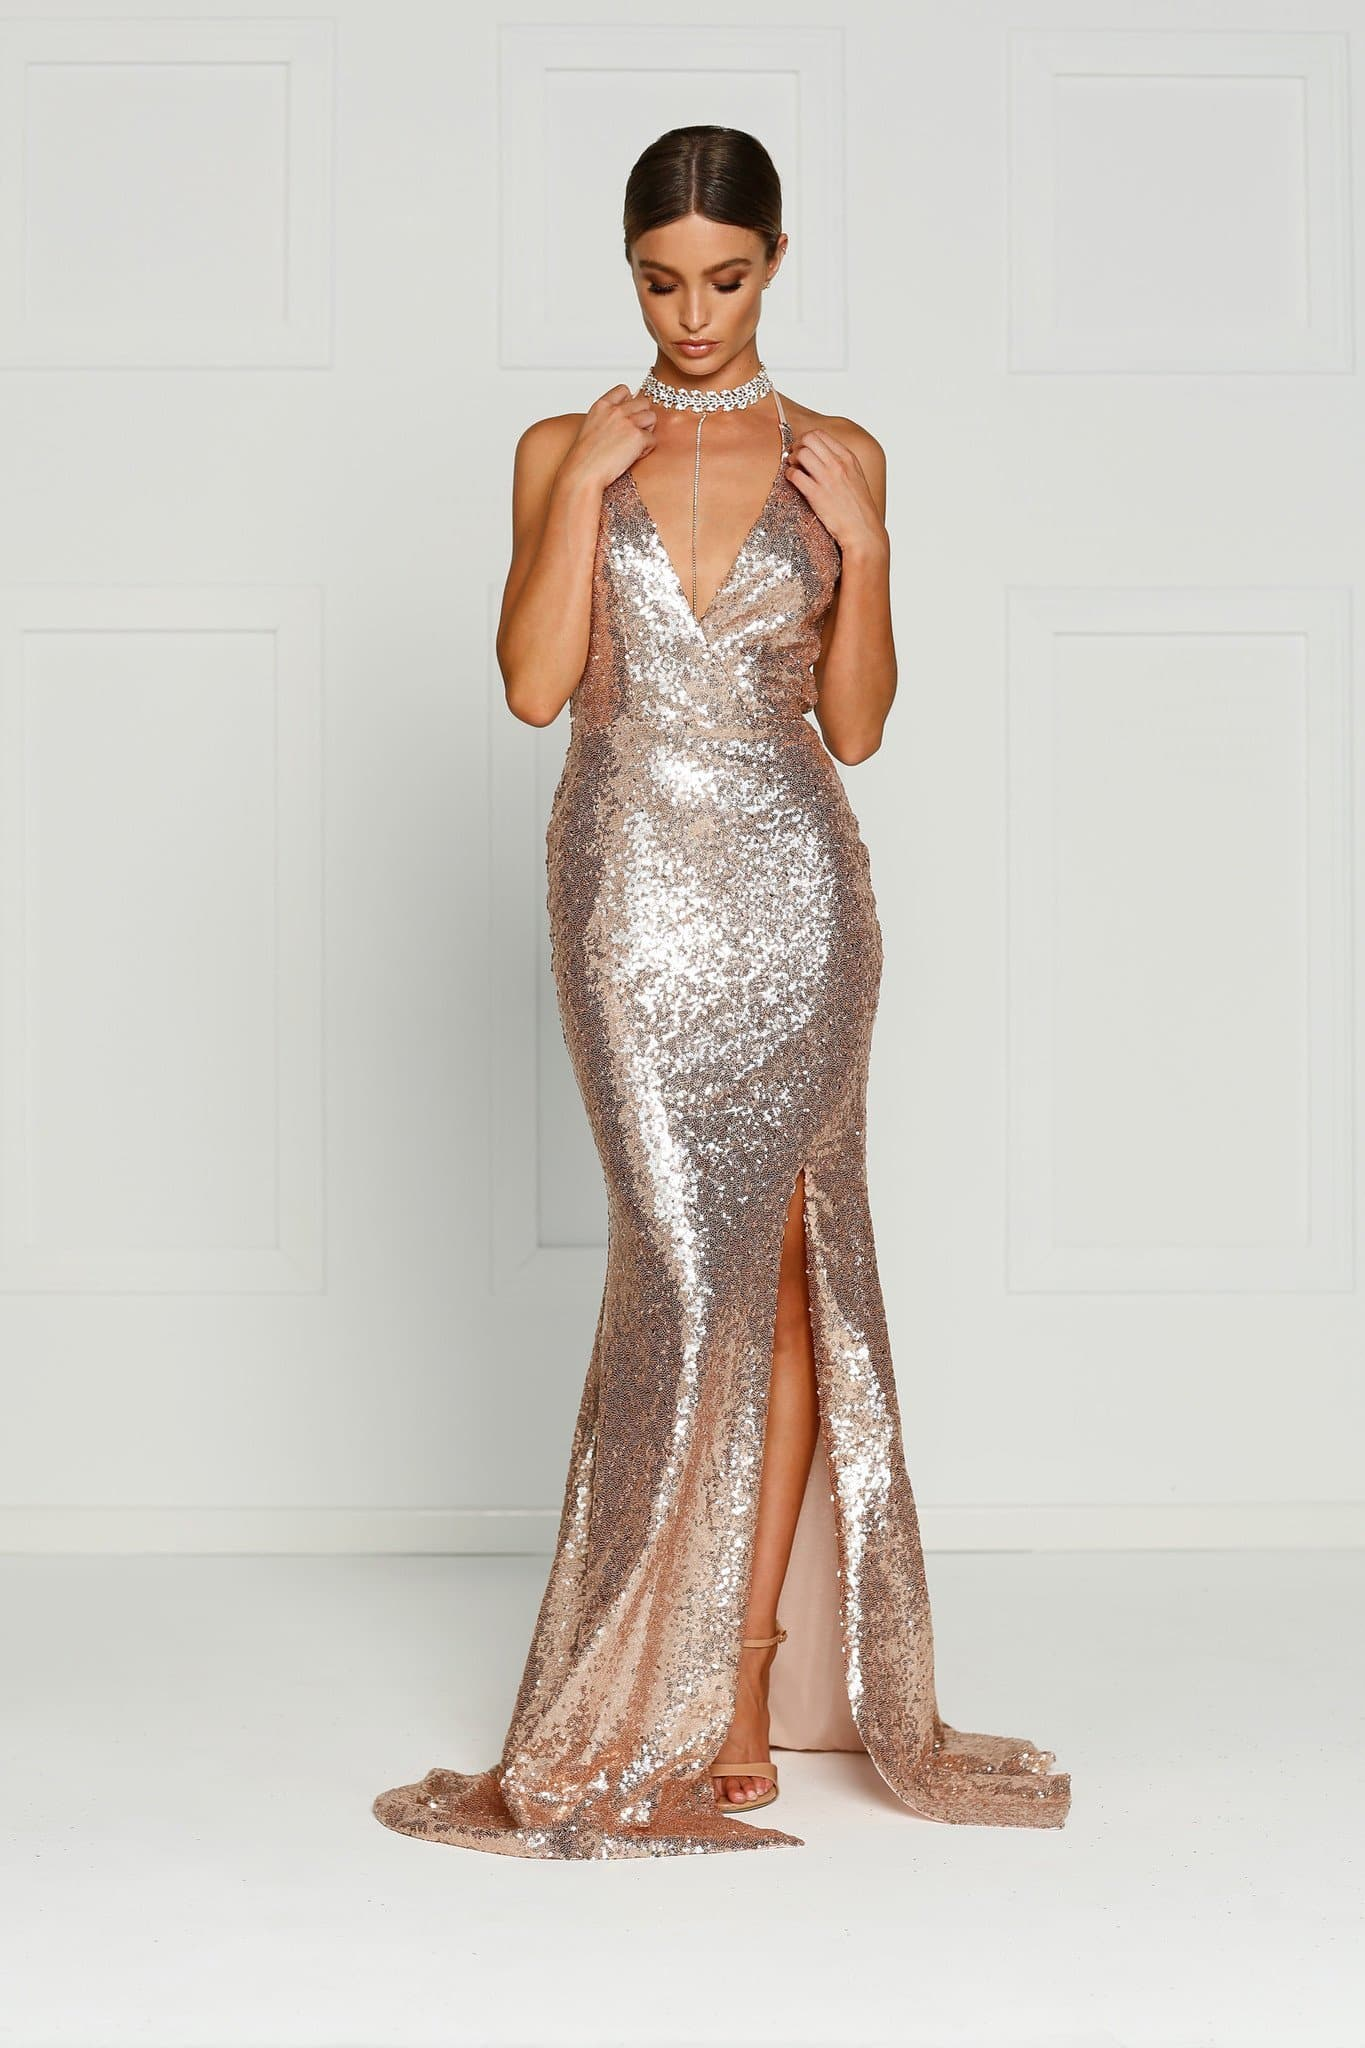 Kylie Formal Dress - Rose Gold Sequins Slit Mermaid Gown